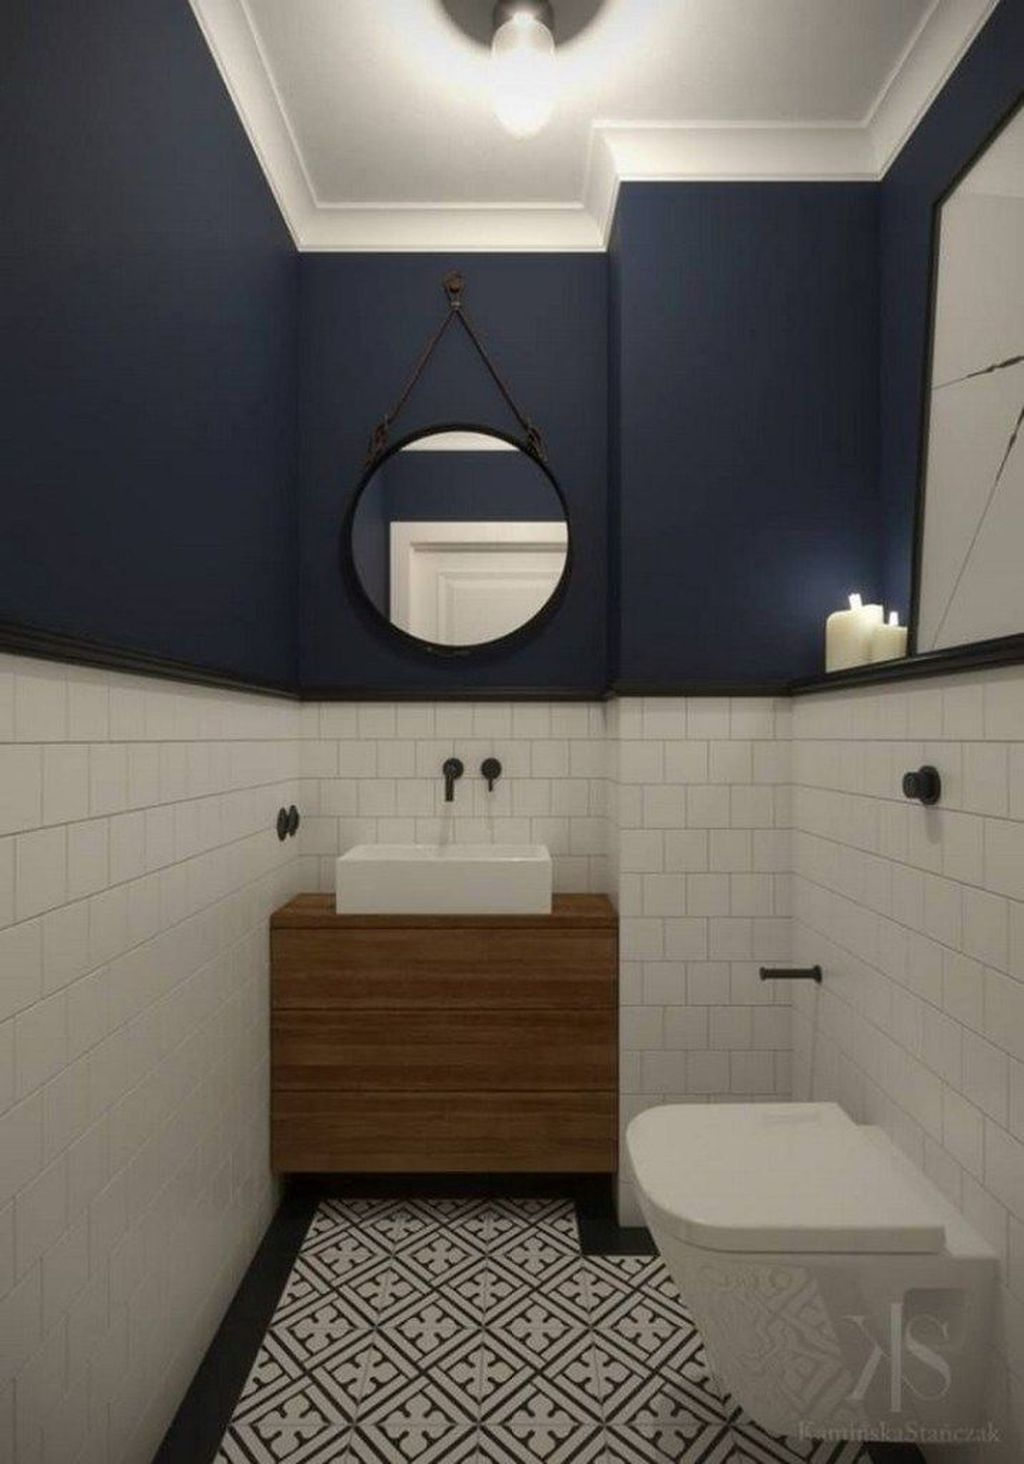 40+ Stunning Small Bathroom Makeover Ideas That Trendy Now #downstairsloo